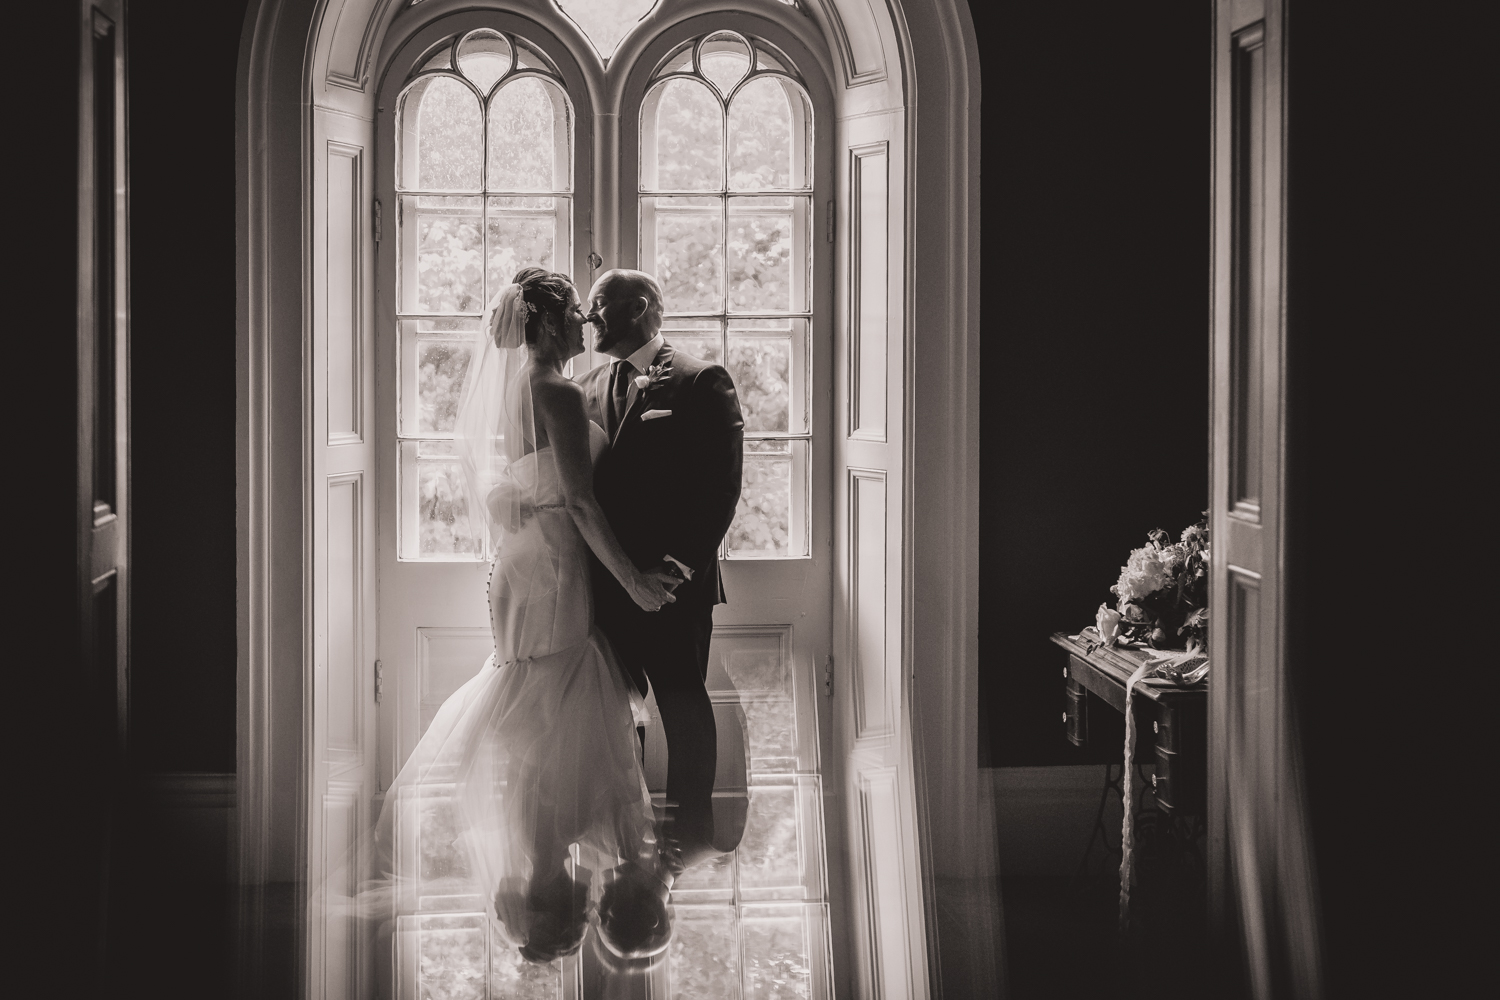 The bride and groom in the beauty of the Strathmere lodge